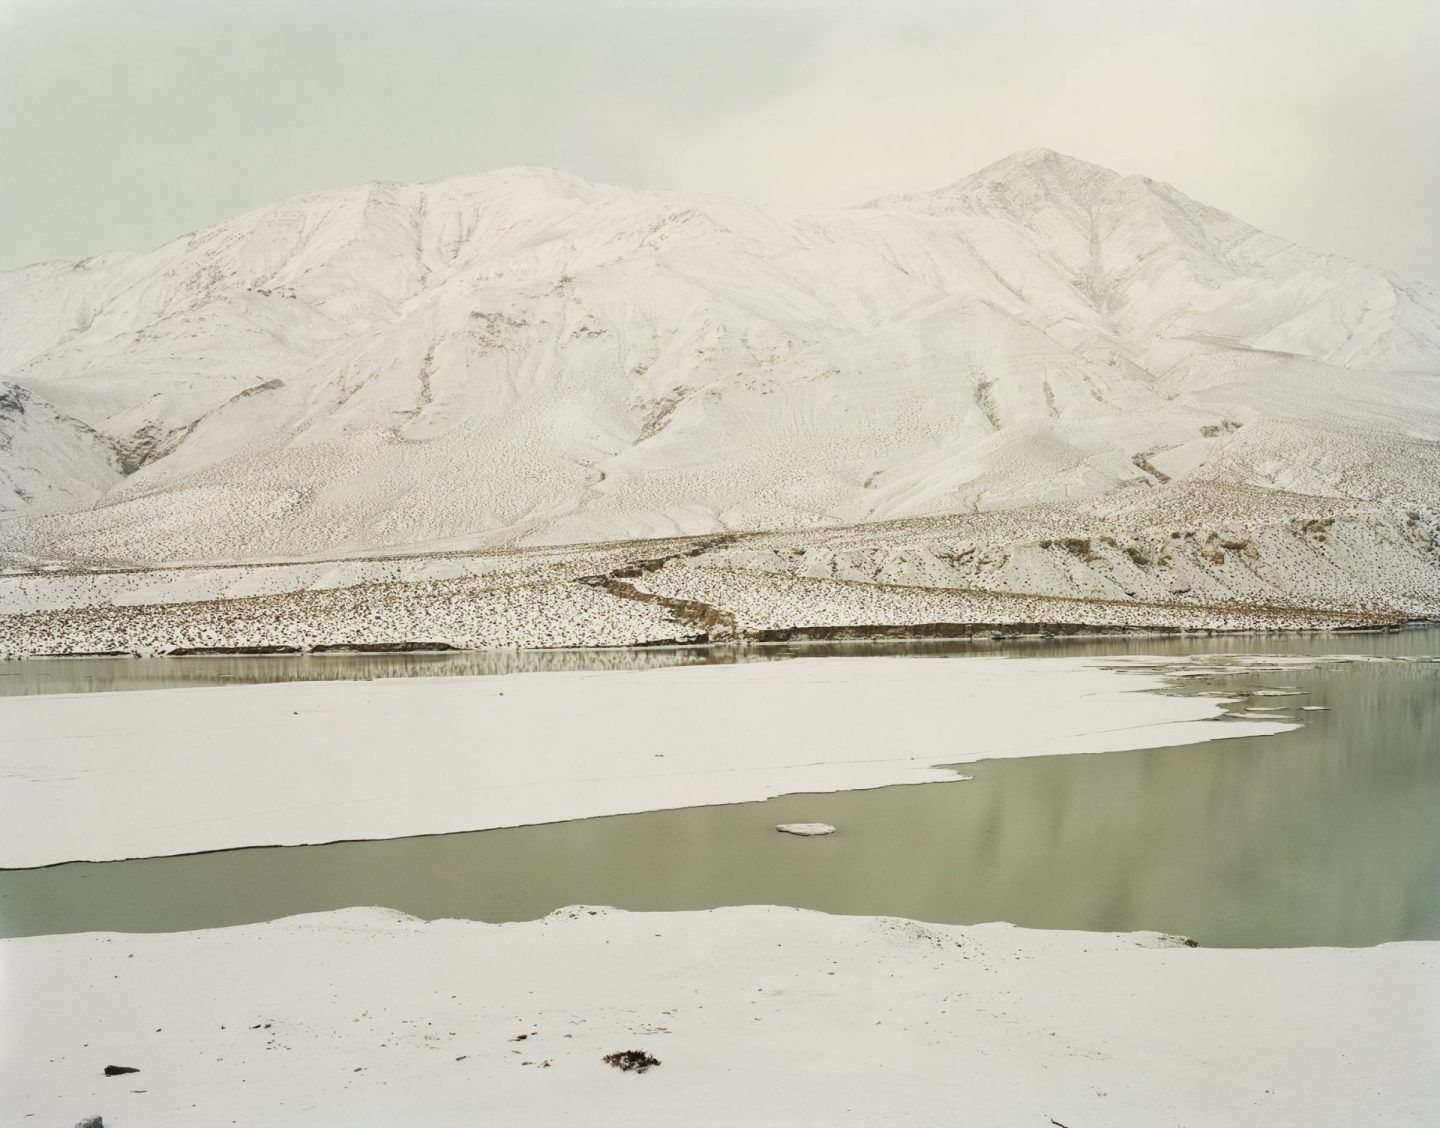 IGNANT-Photography-Nadav-Kander-Yangtze-The-Long-River-020